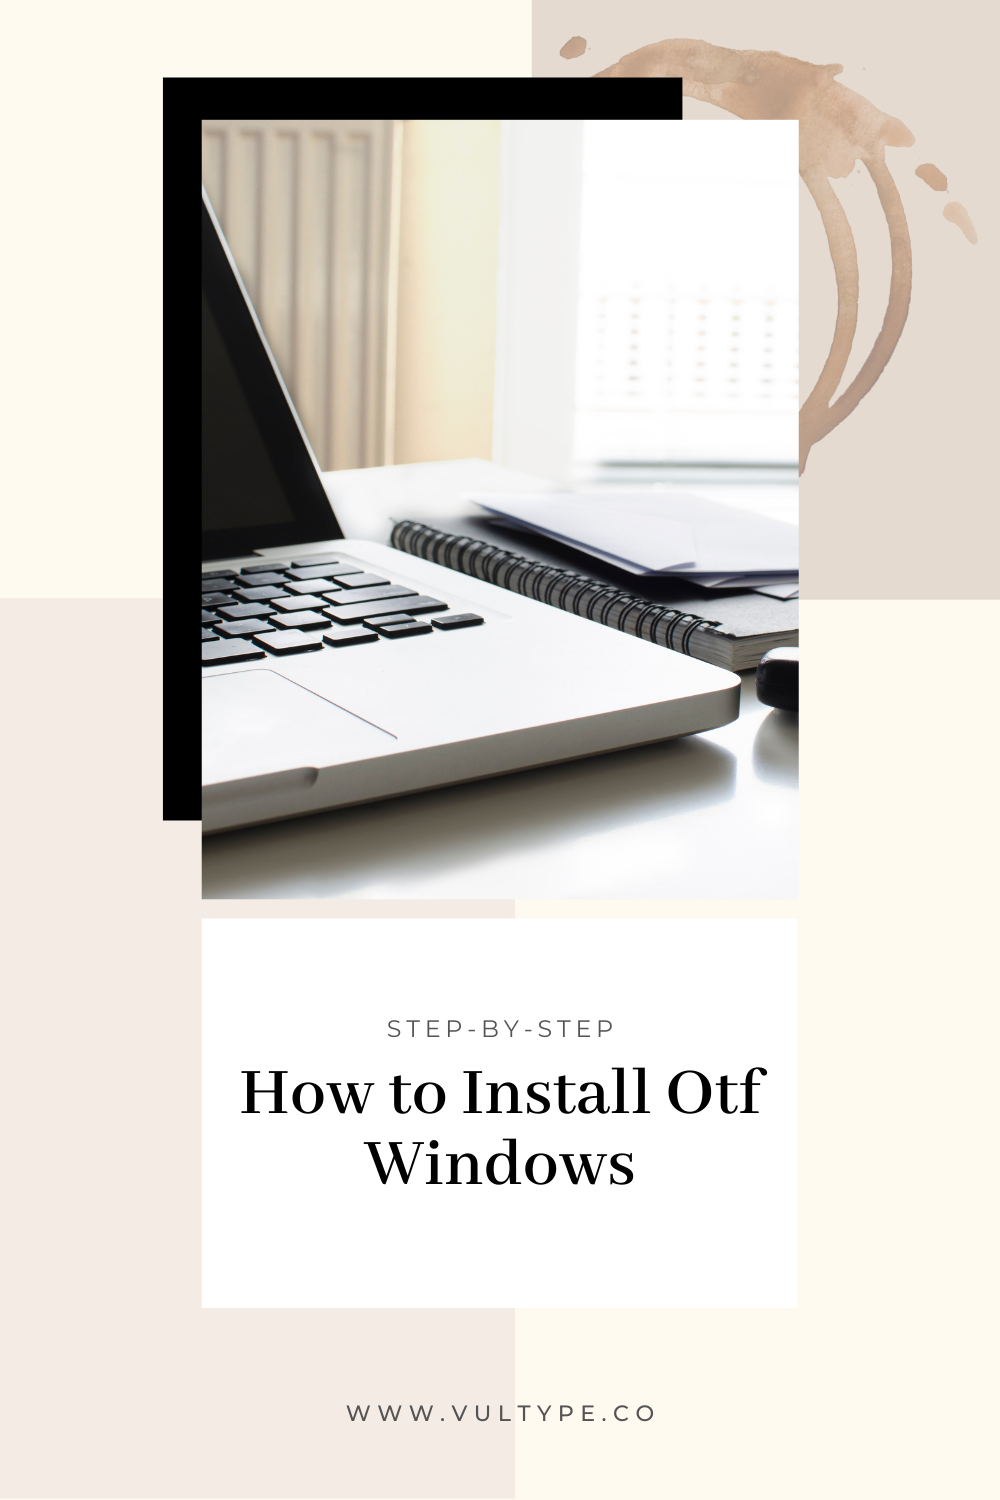 How to Install Otf Windows